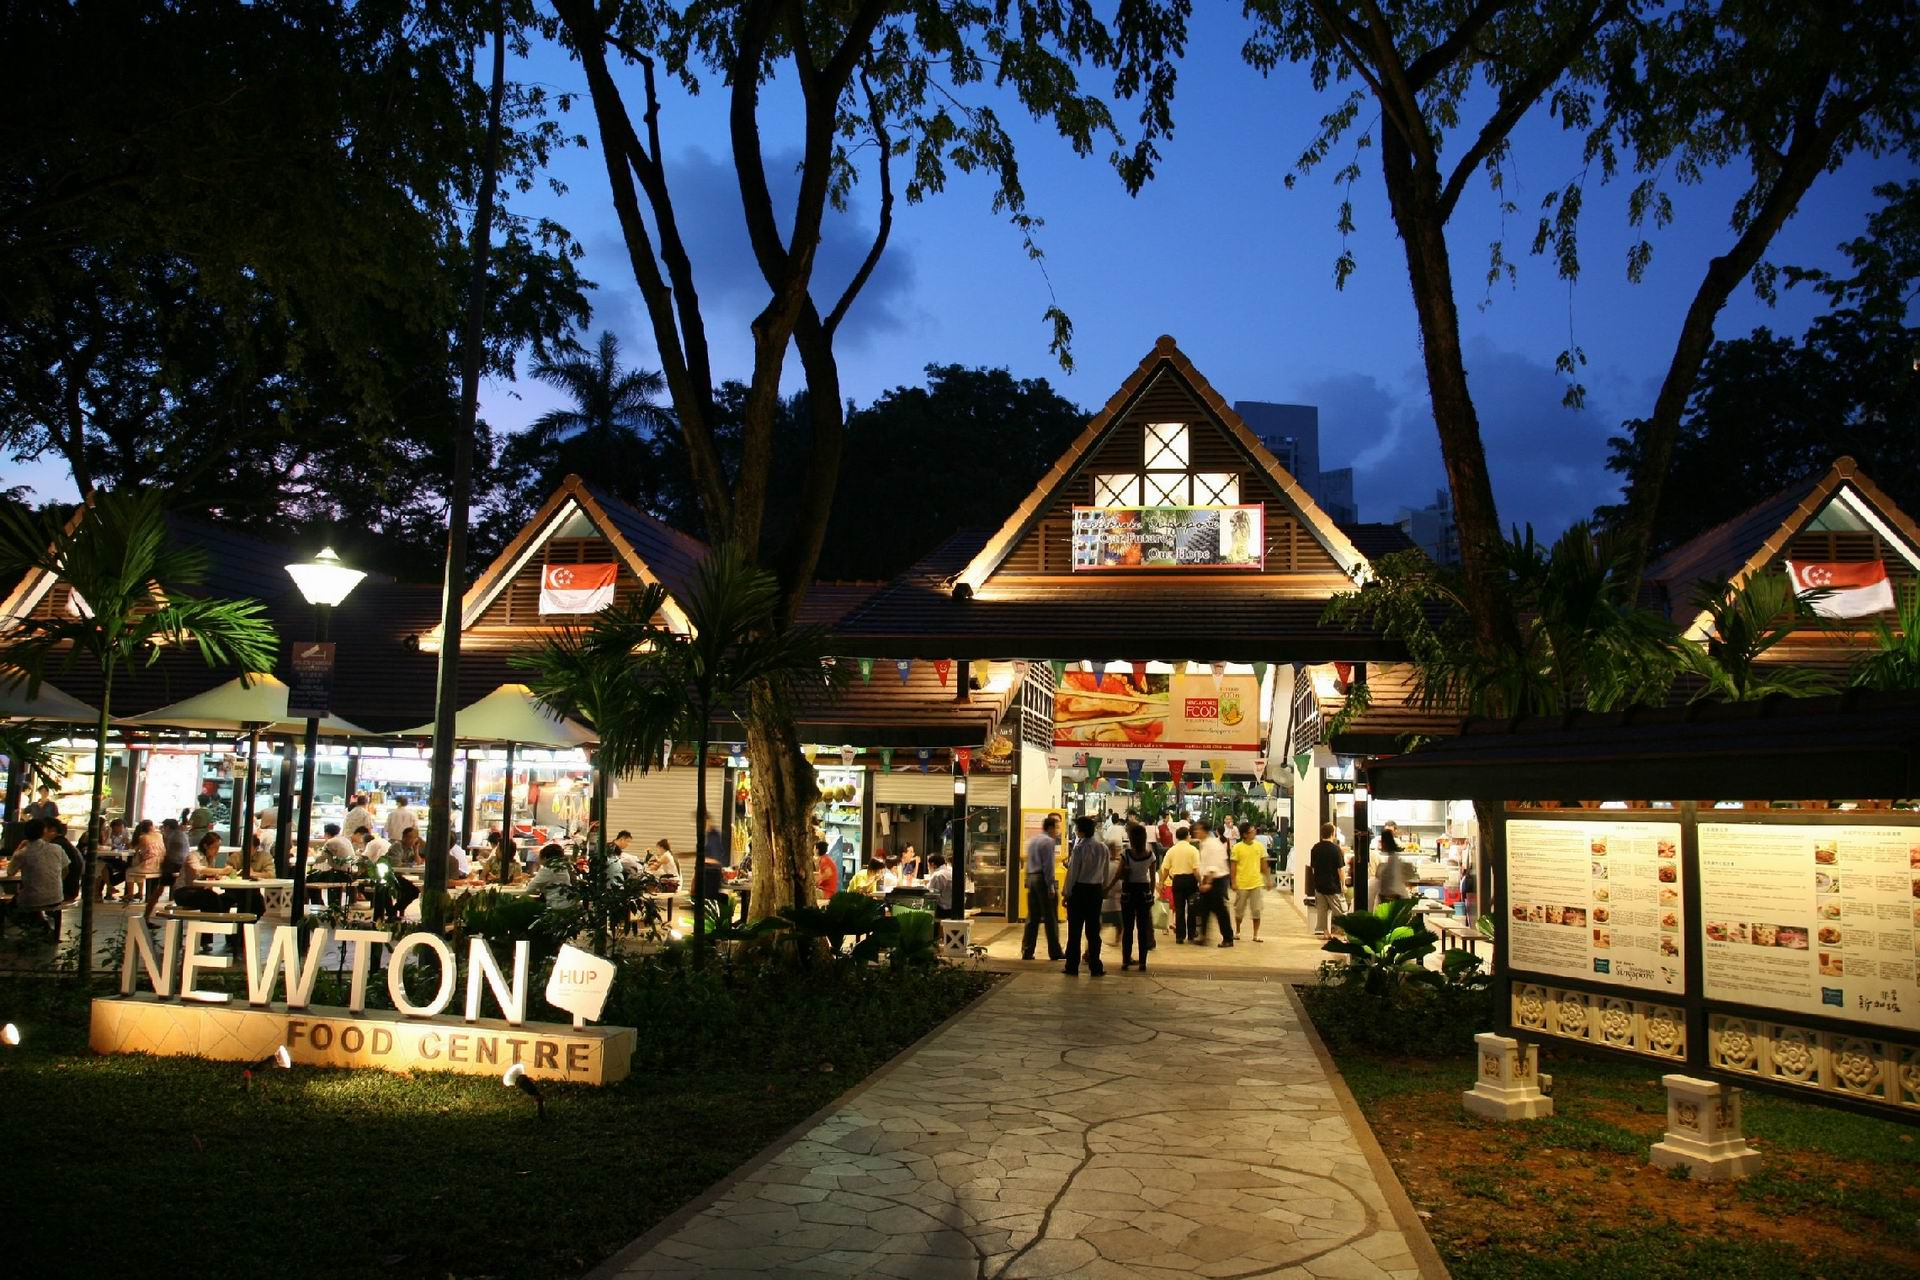 newton_food_centre_singapore